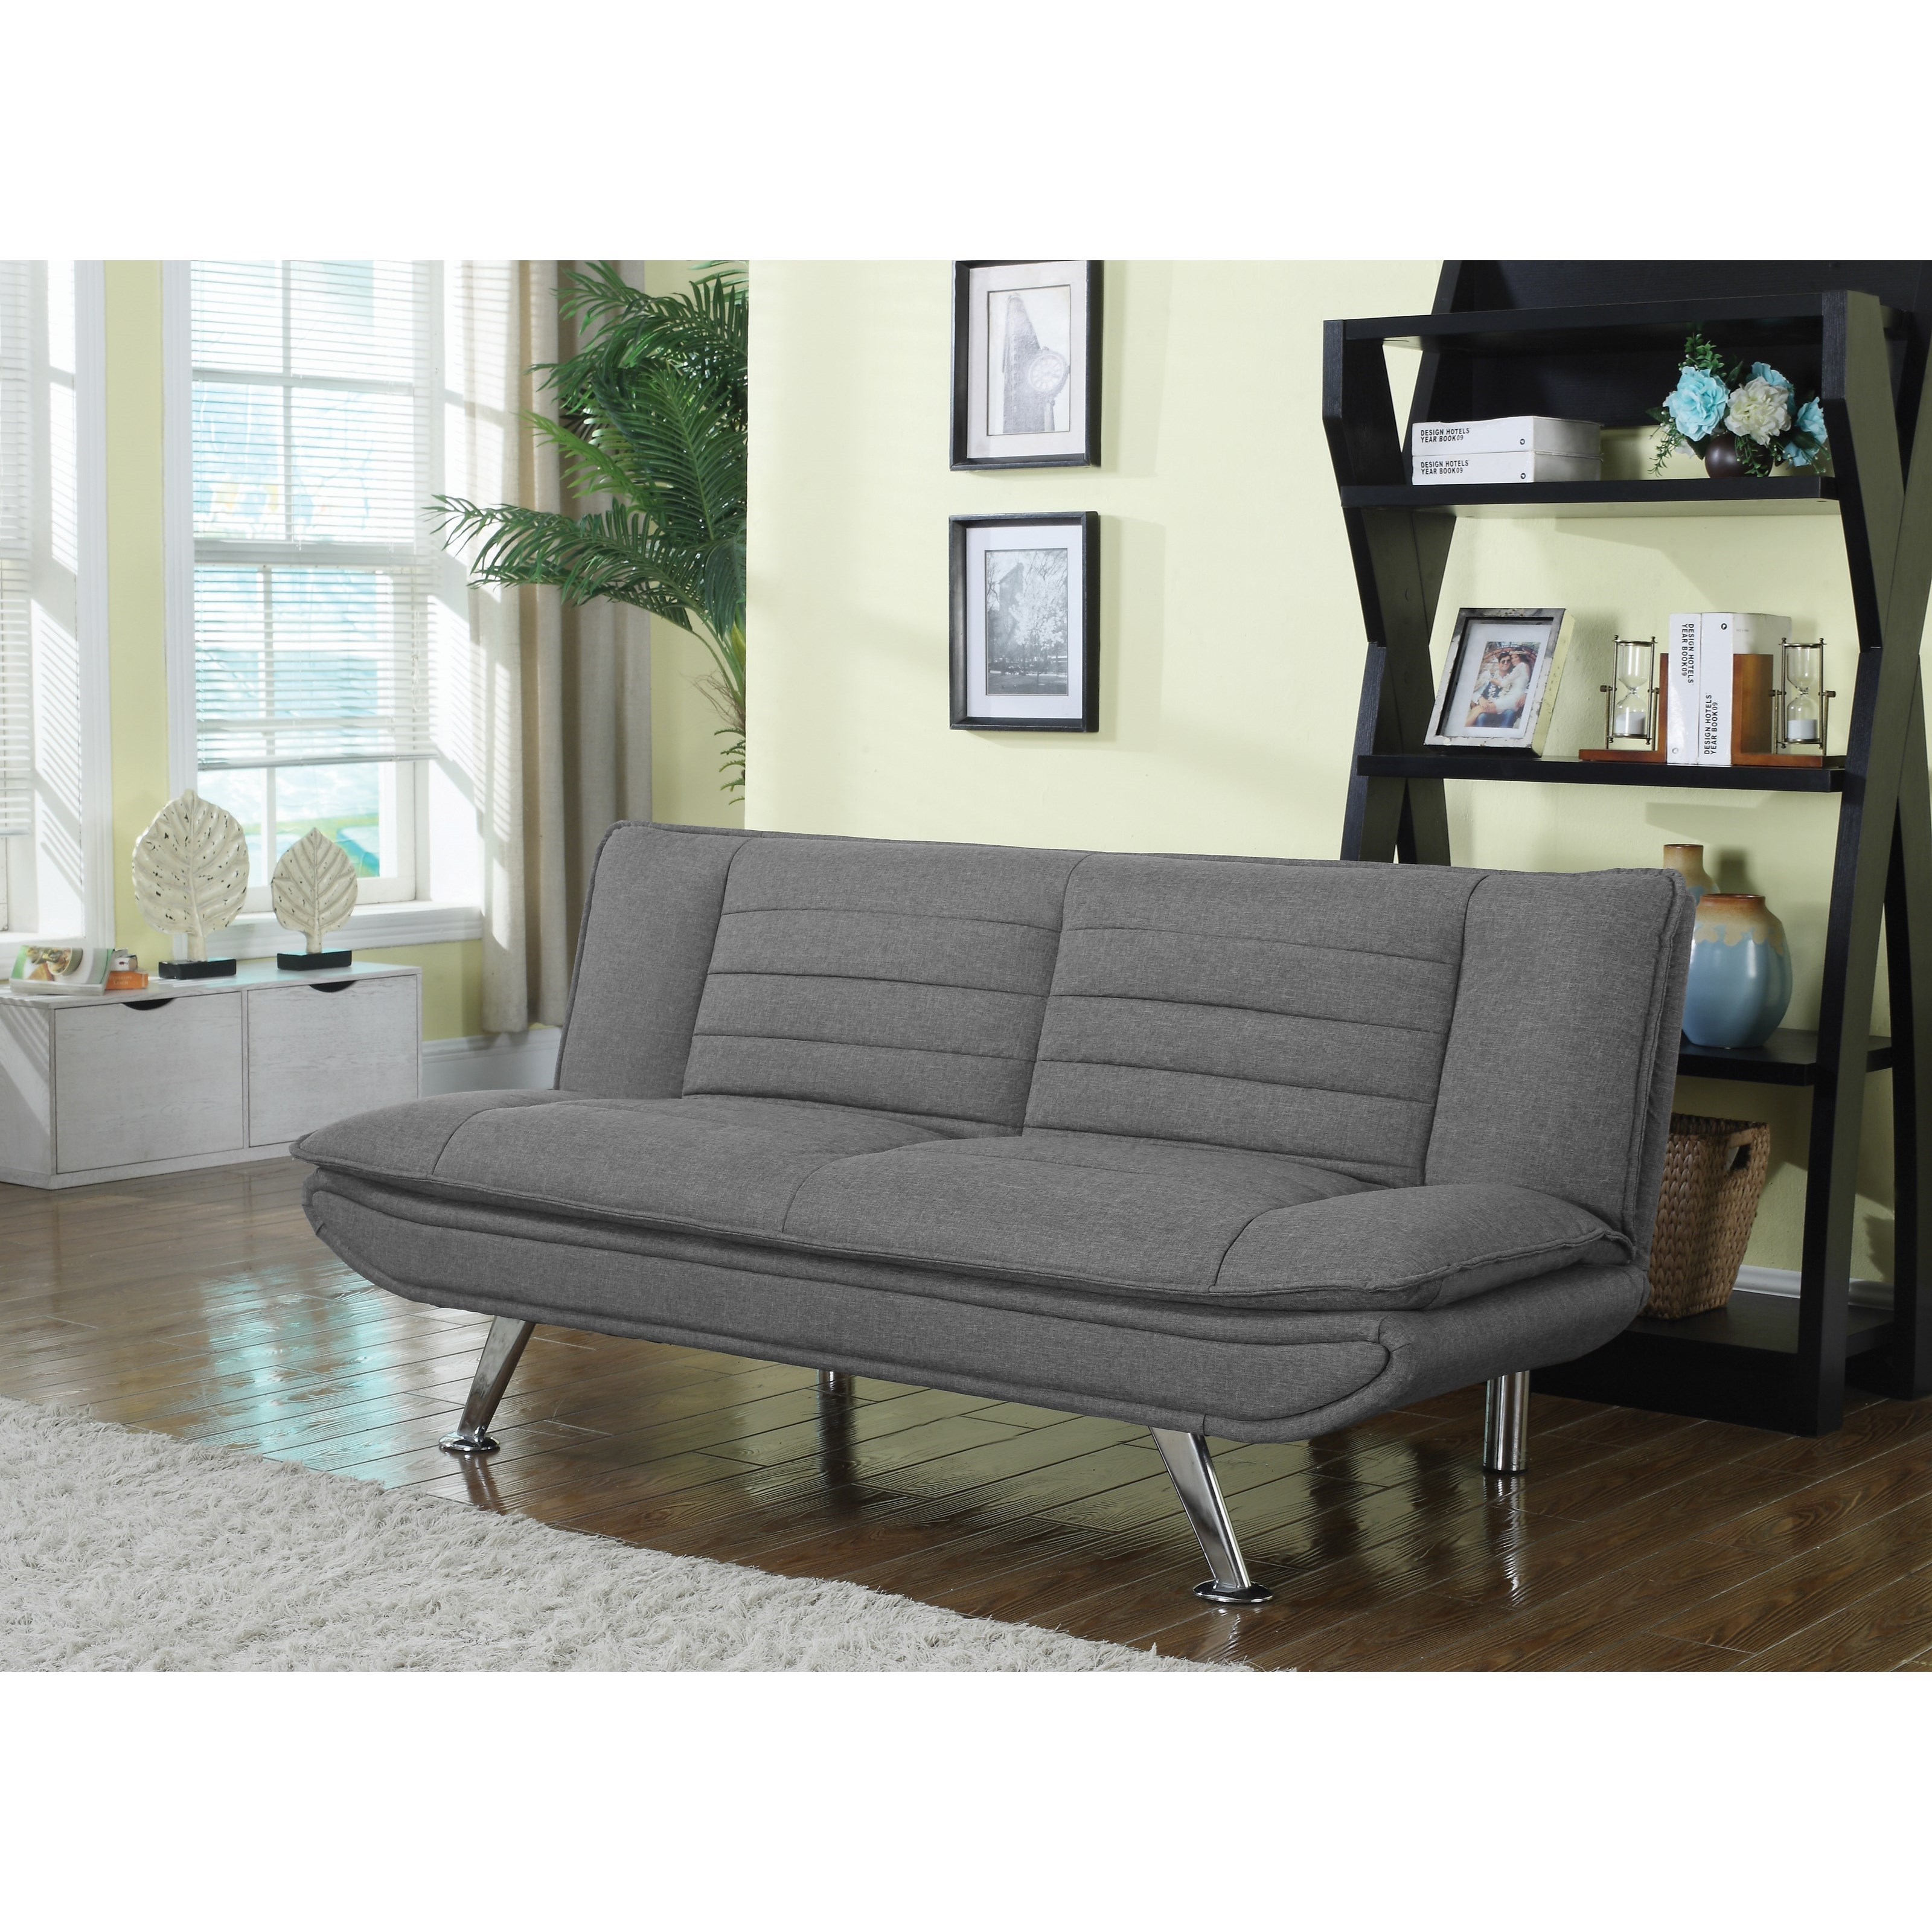 Futons Sofa Bed by Coaster at Northeast Factory Direct